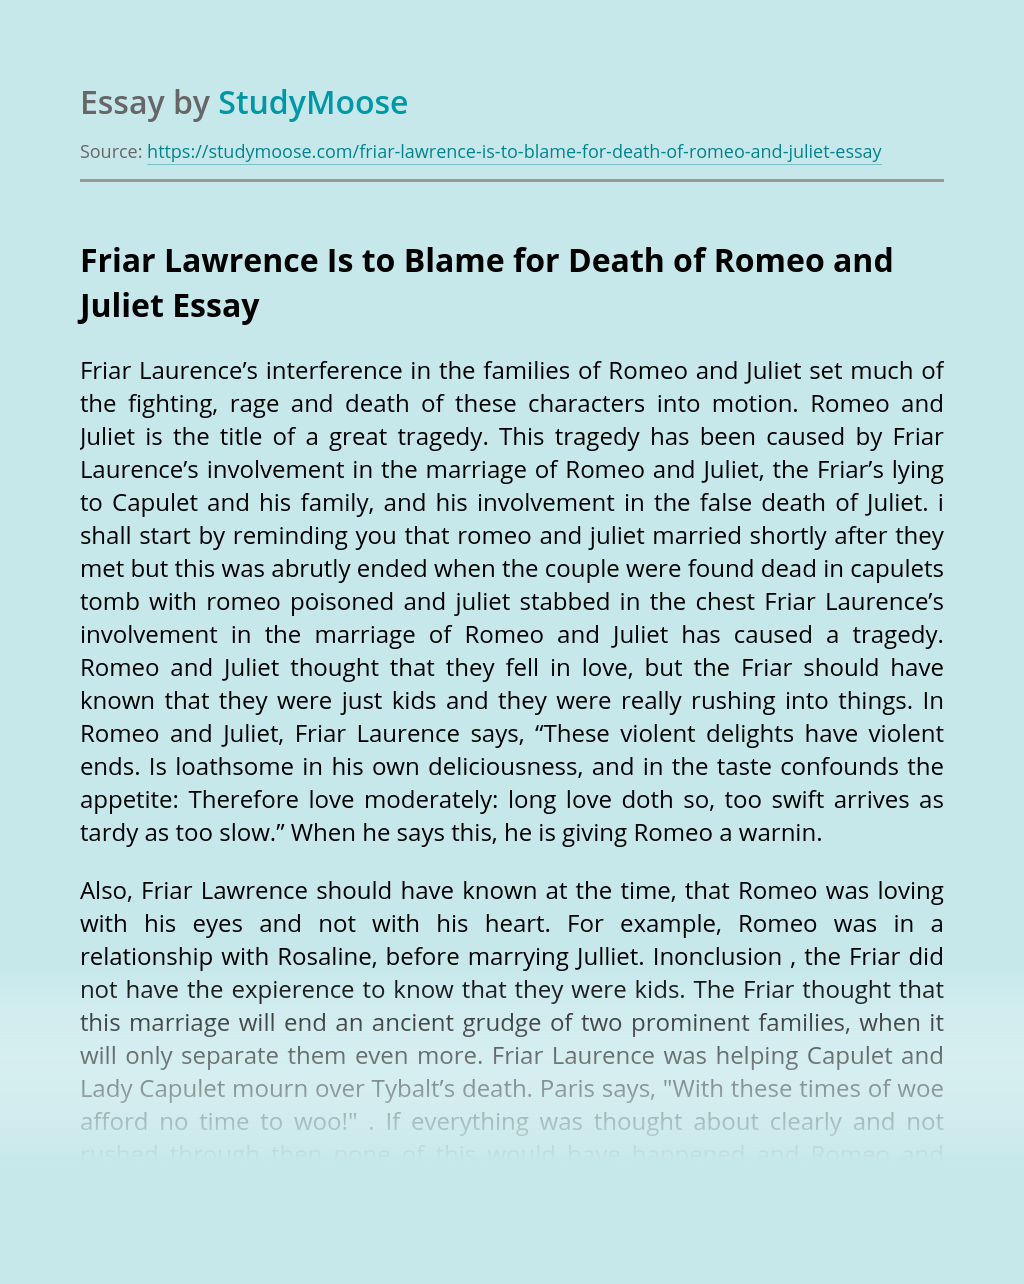 Friar Lawrence Is to Blame for Death of Romeo and Juliet